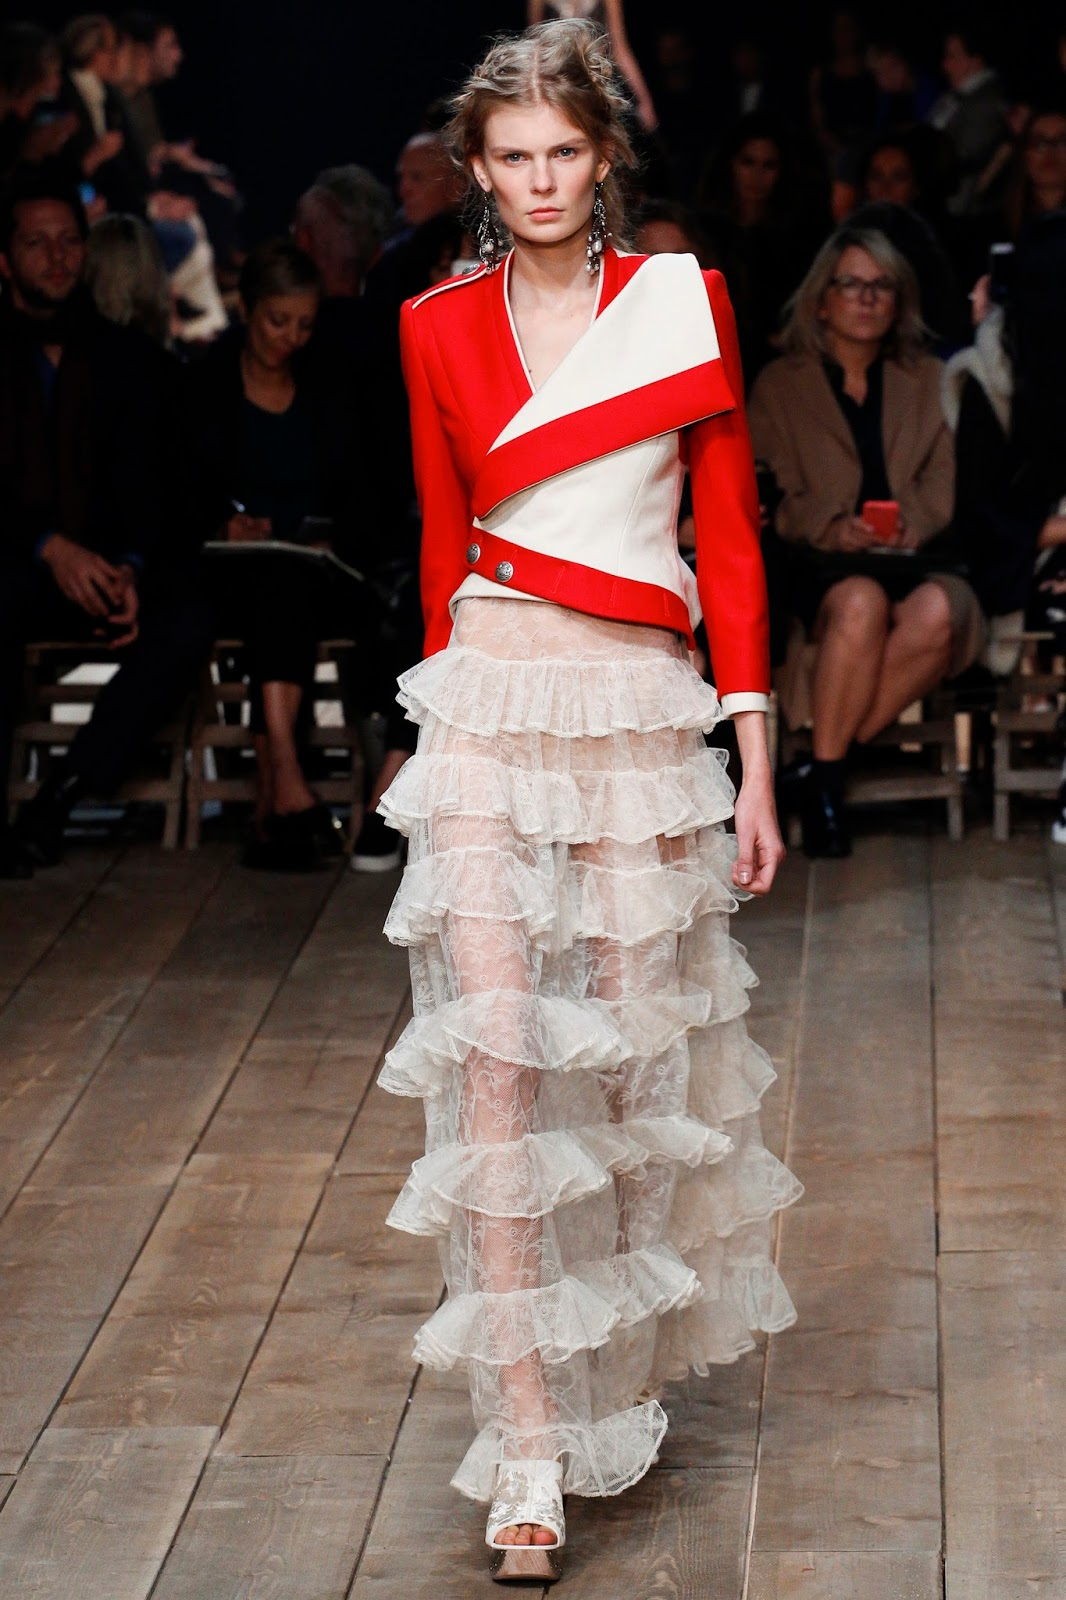 Paris Fashion Week, Spring 2016, Ready to Wear, pfw, rtw, runway fashion, Alexander MacQueen